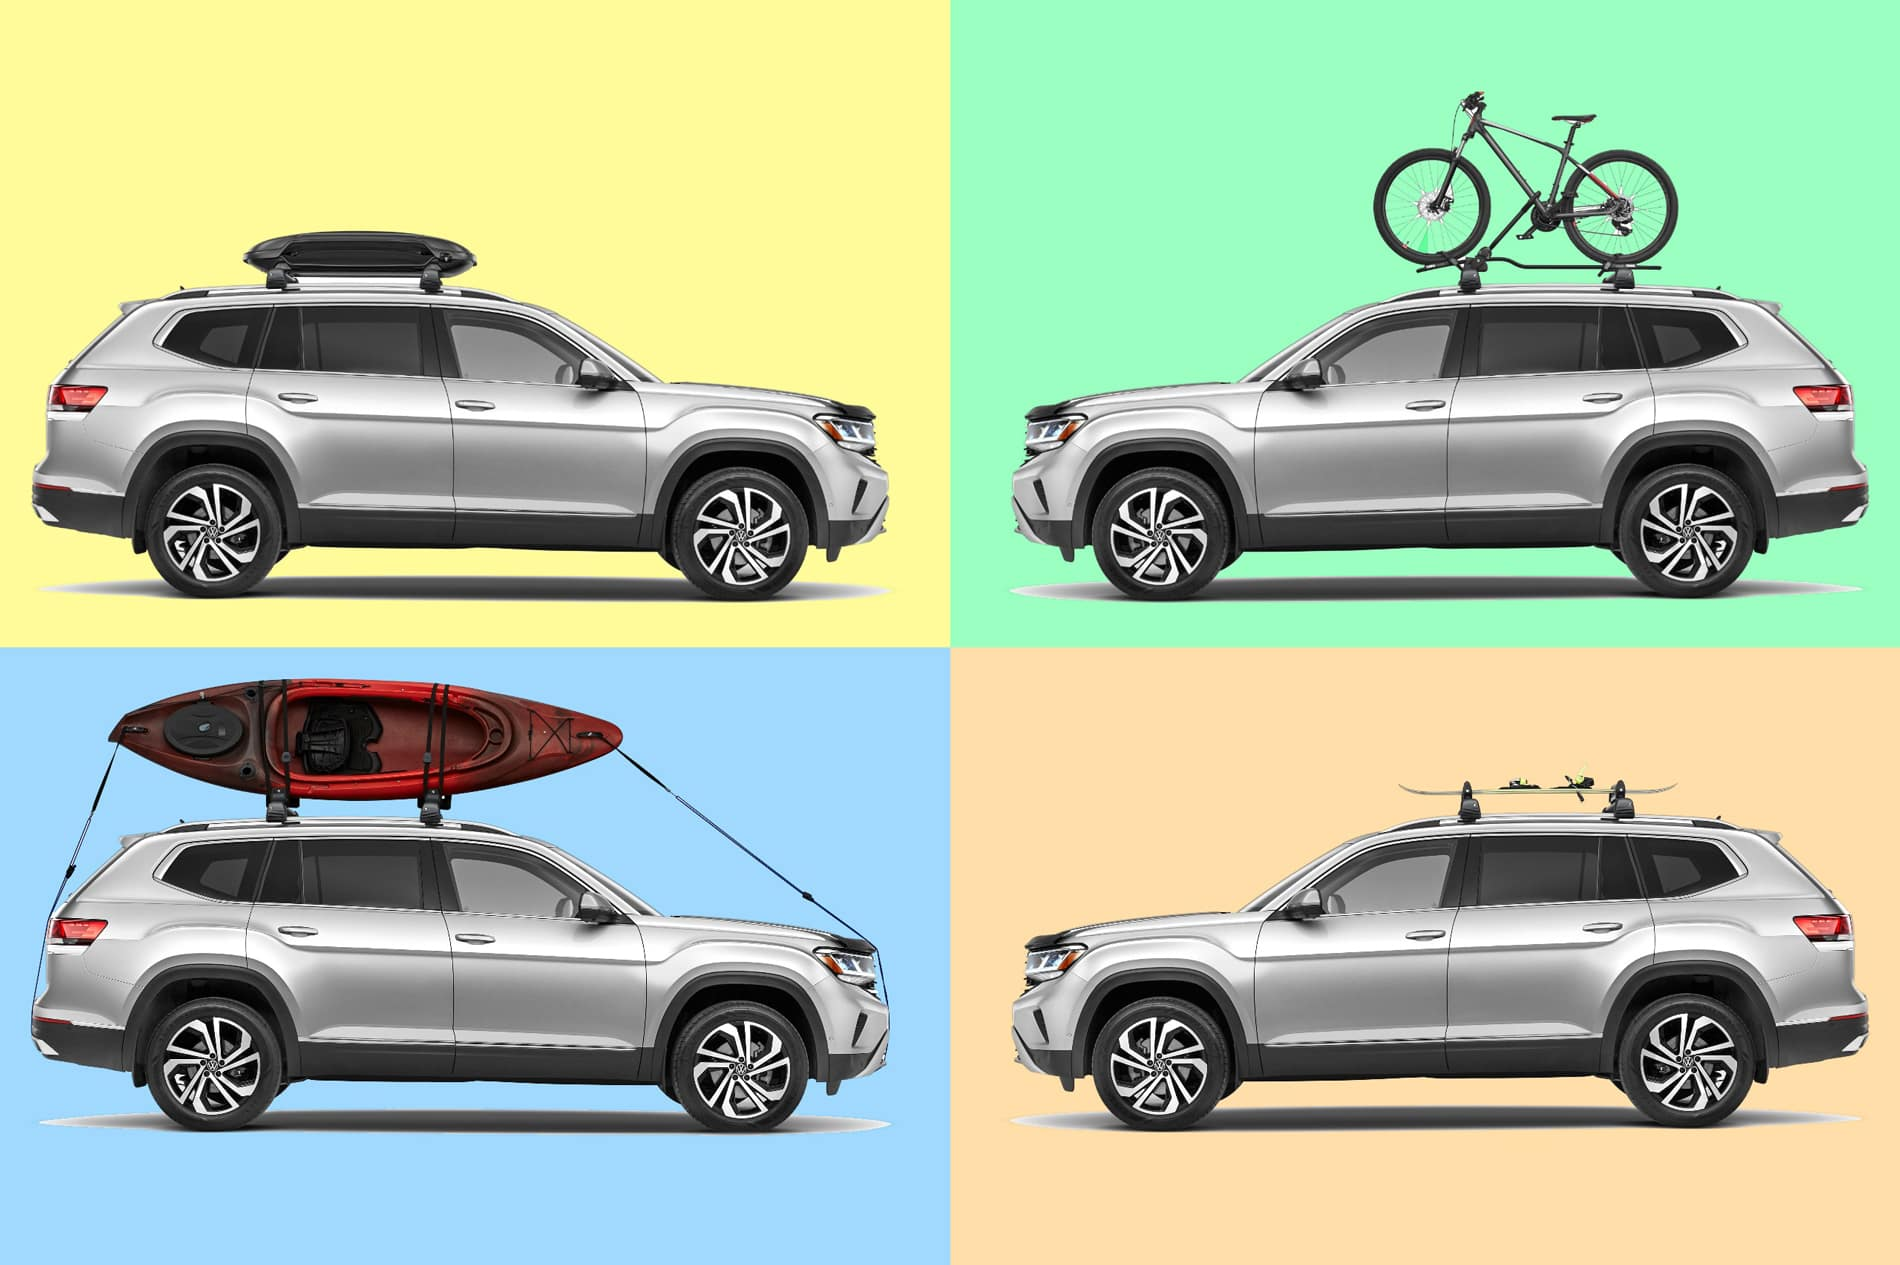 Timmons VW Long Beach has automotive accessories to make your road trip exceptional